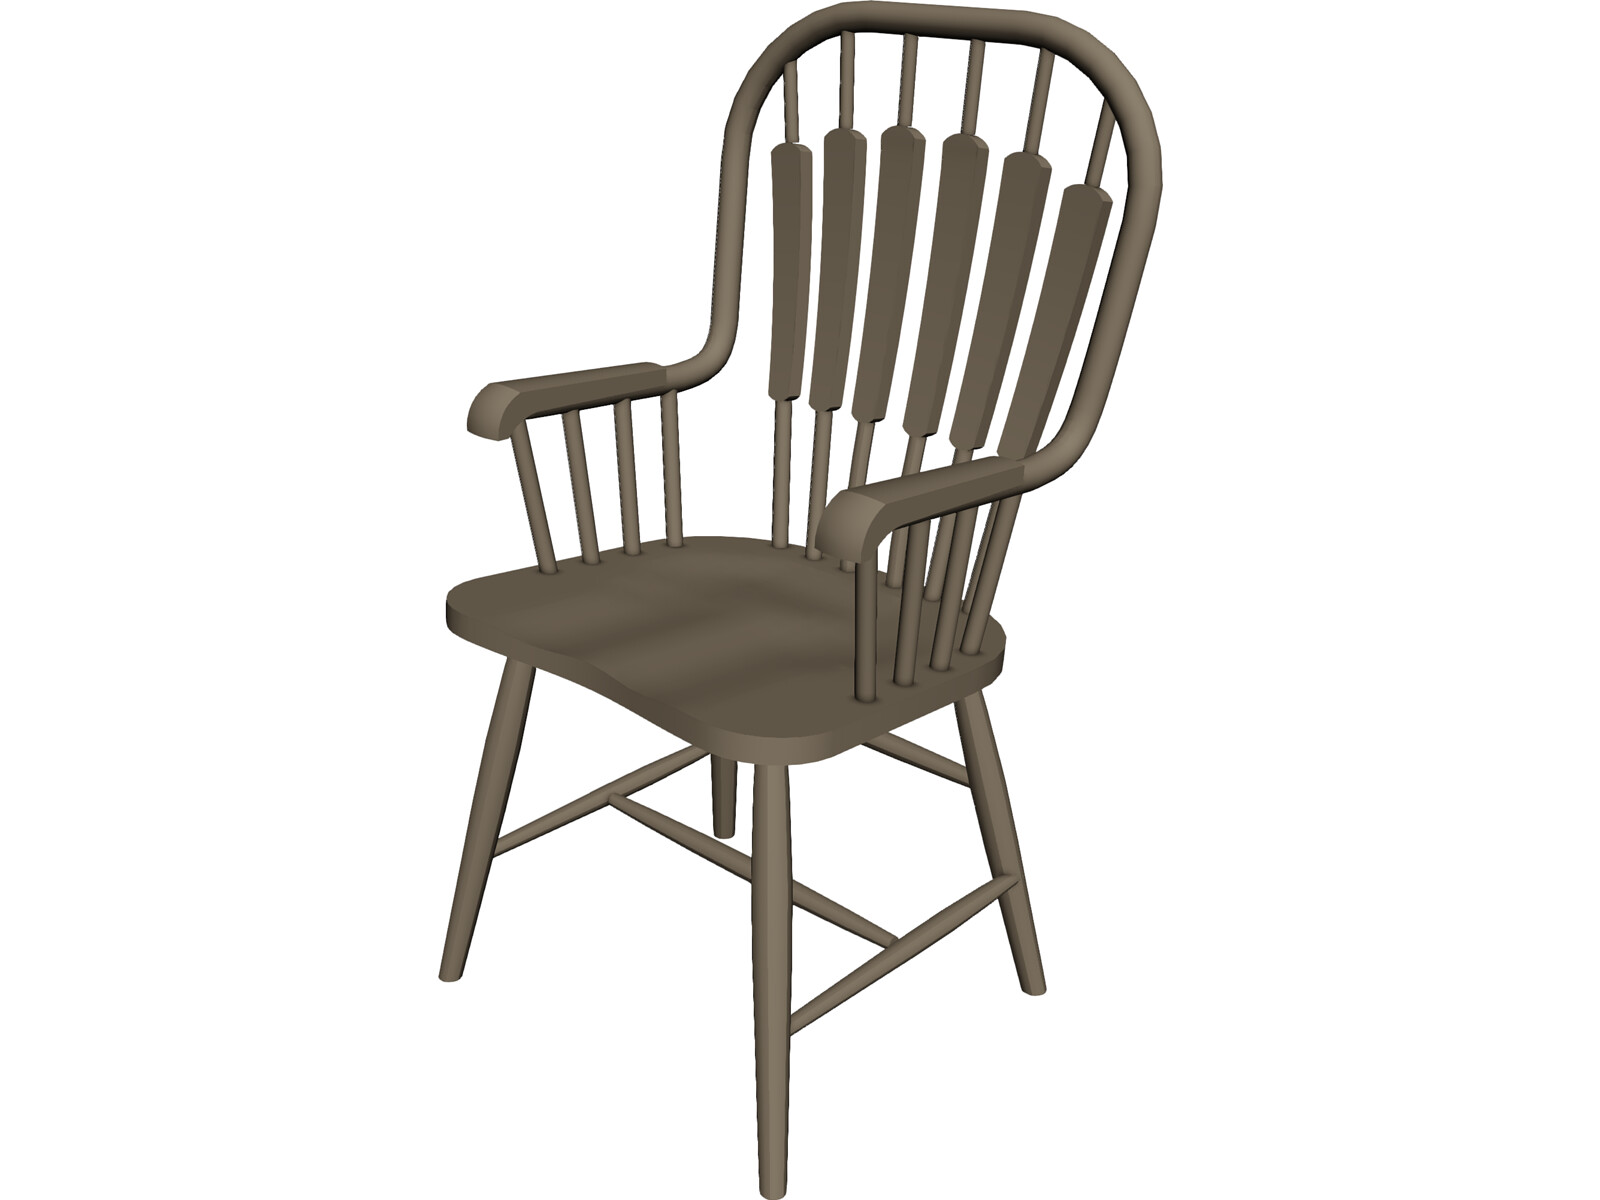 Chair wooden 3d model 3d cad browser for Chair 3d model maya